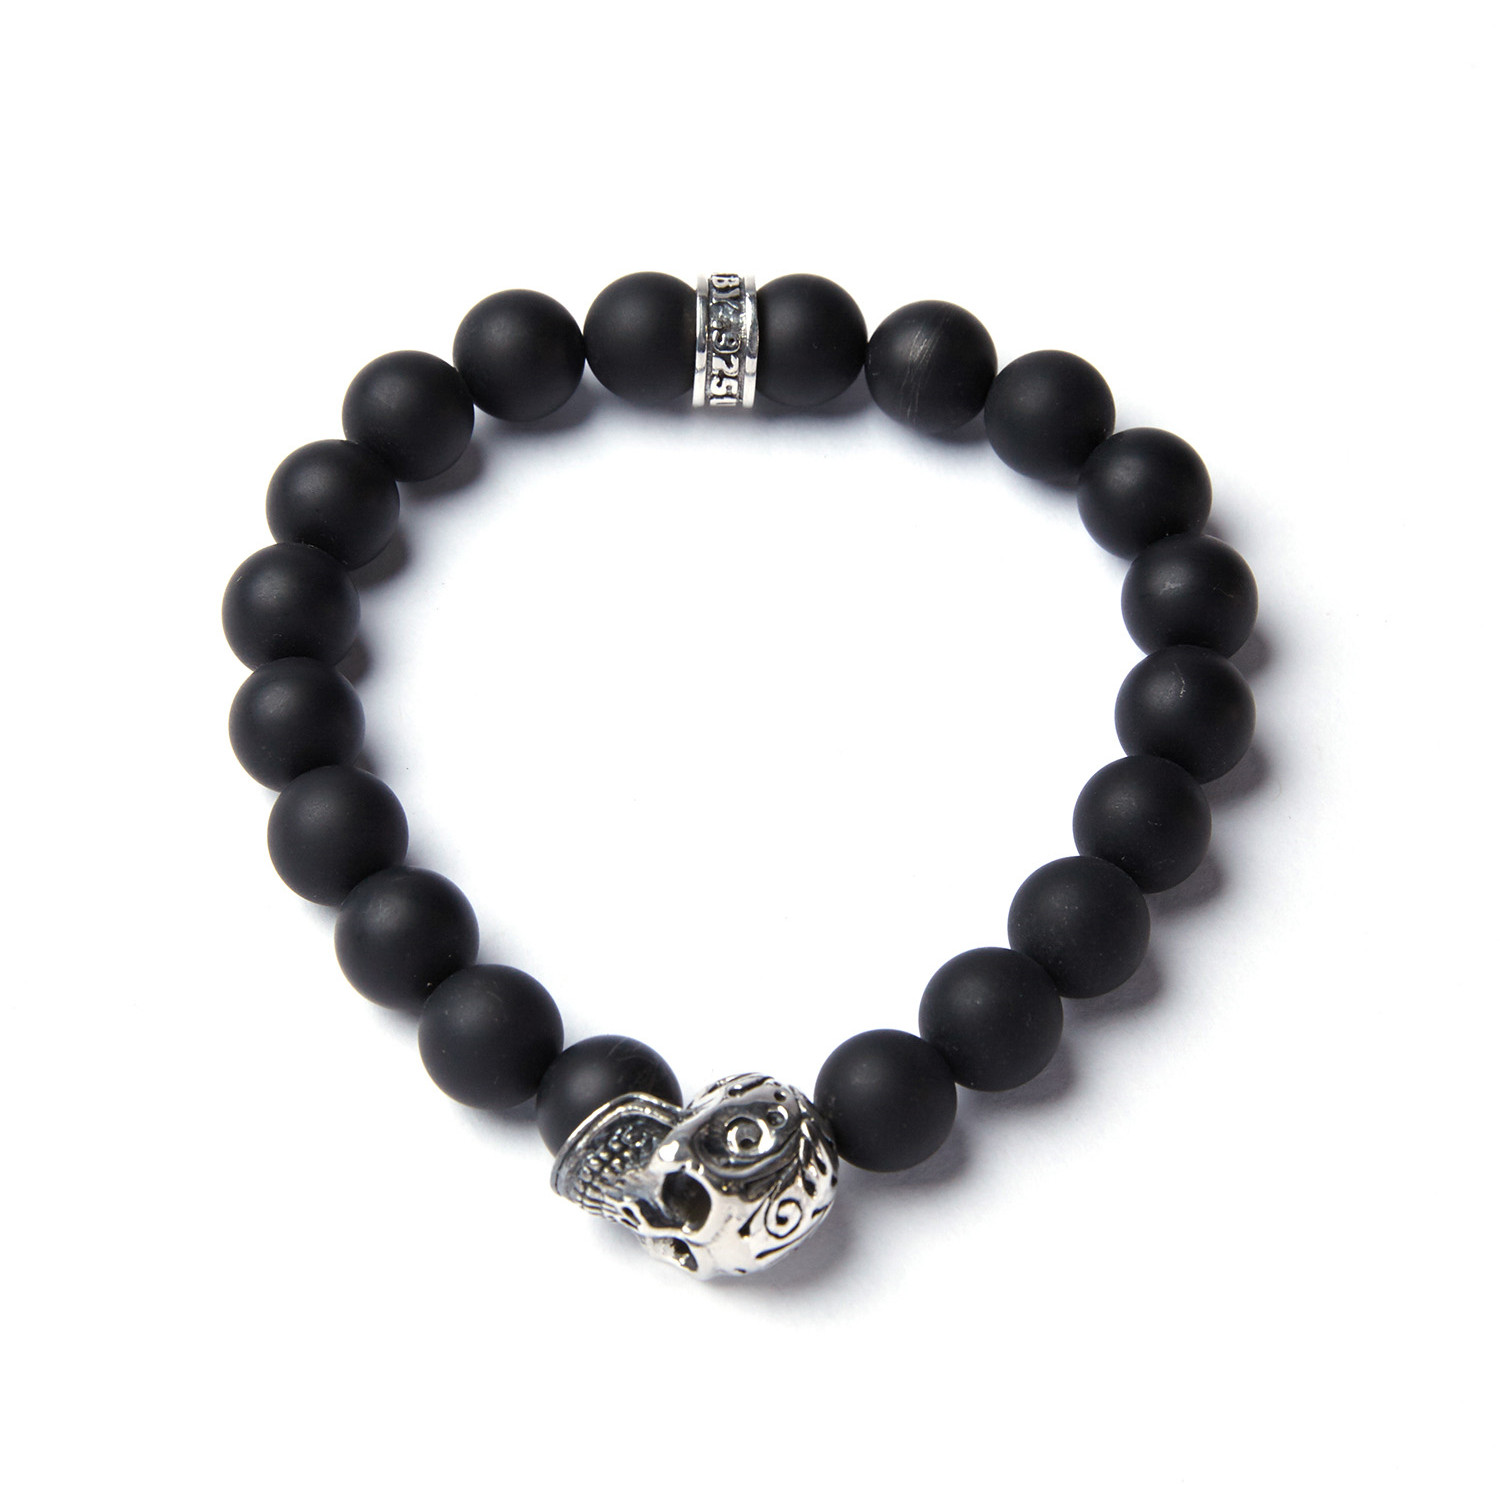 10mm black onyx bead bracelet king baby touch of modern for King baby jewelry sale